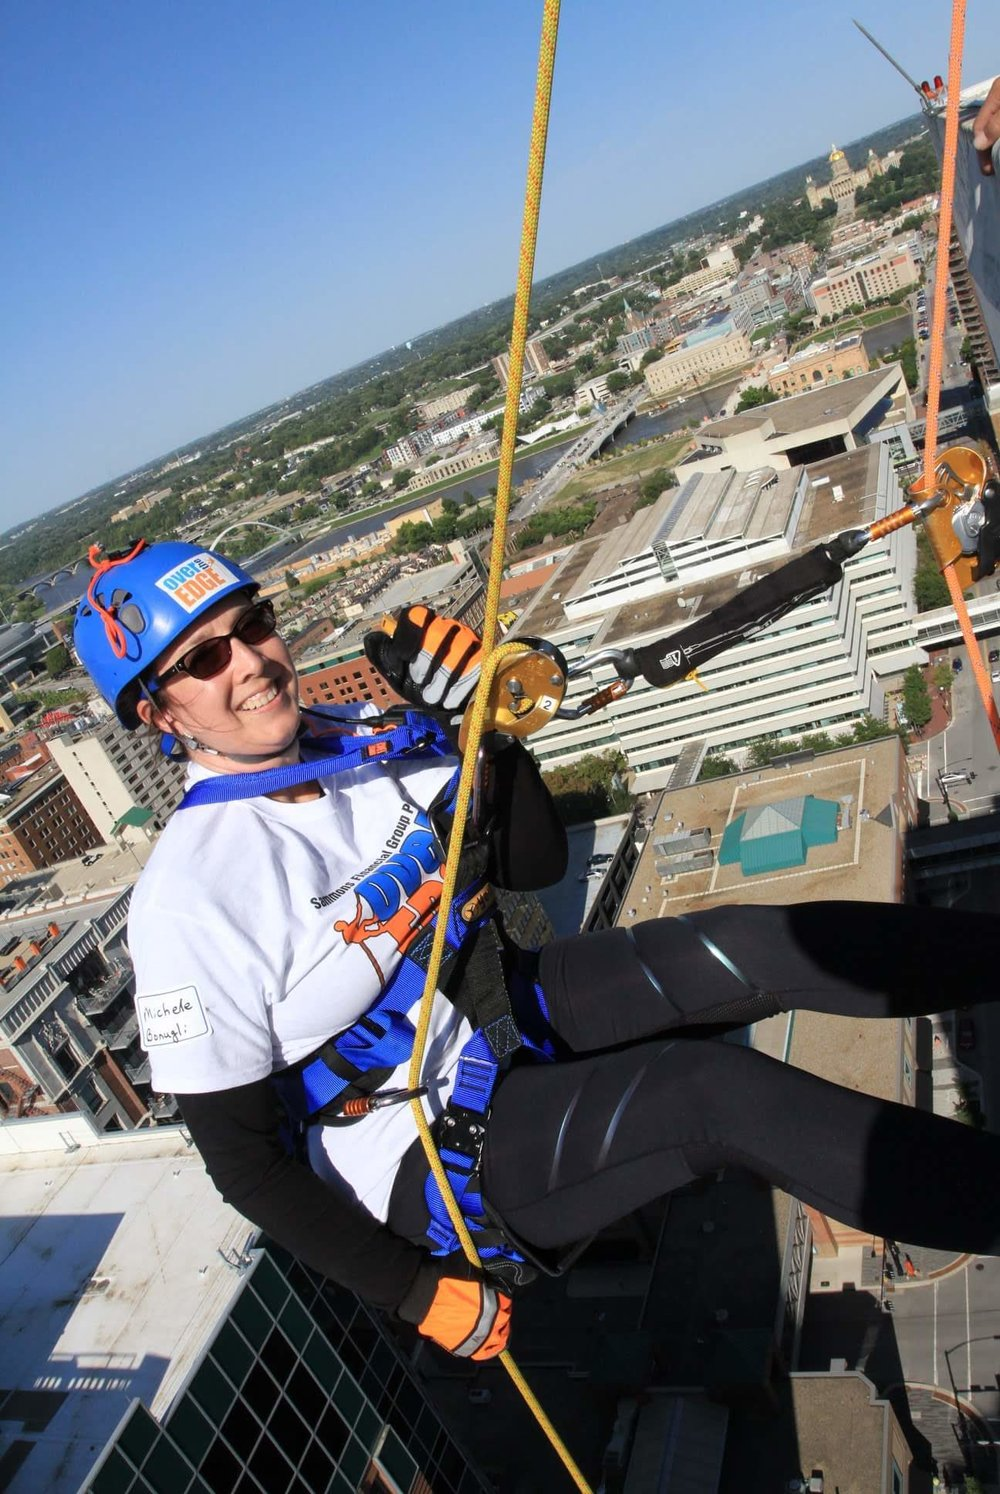 Michelle rappelling from a 27 story building in Des Moines, Iowa.